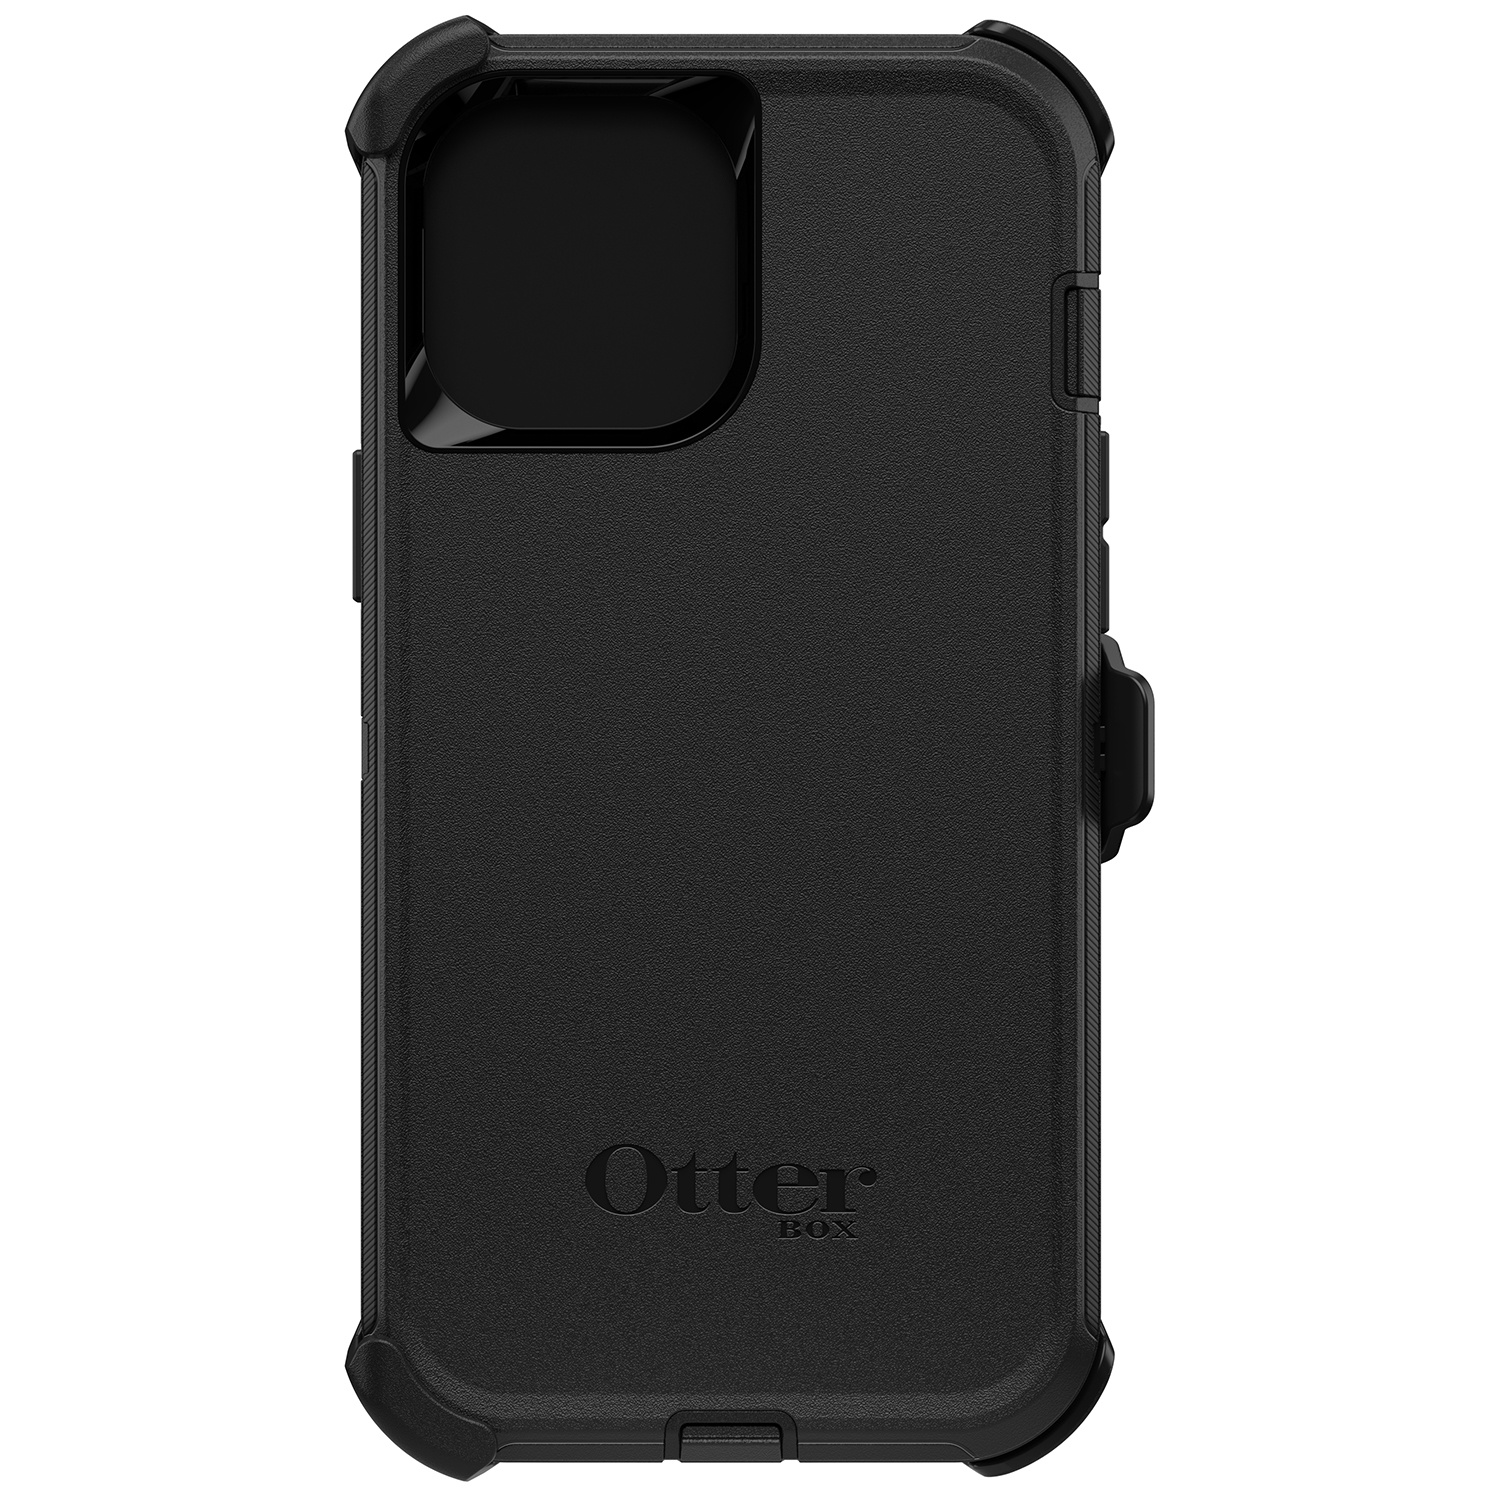 OtterBox Defender Rugged Backcover iPhone 12 Pro Max - Zwart